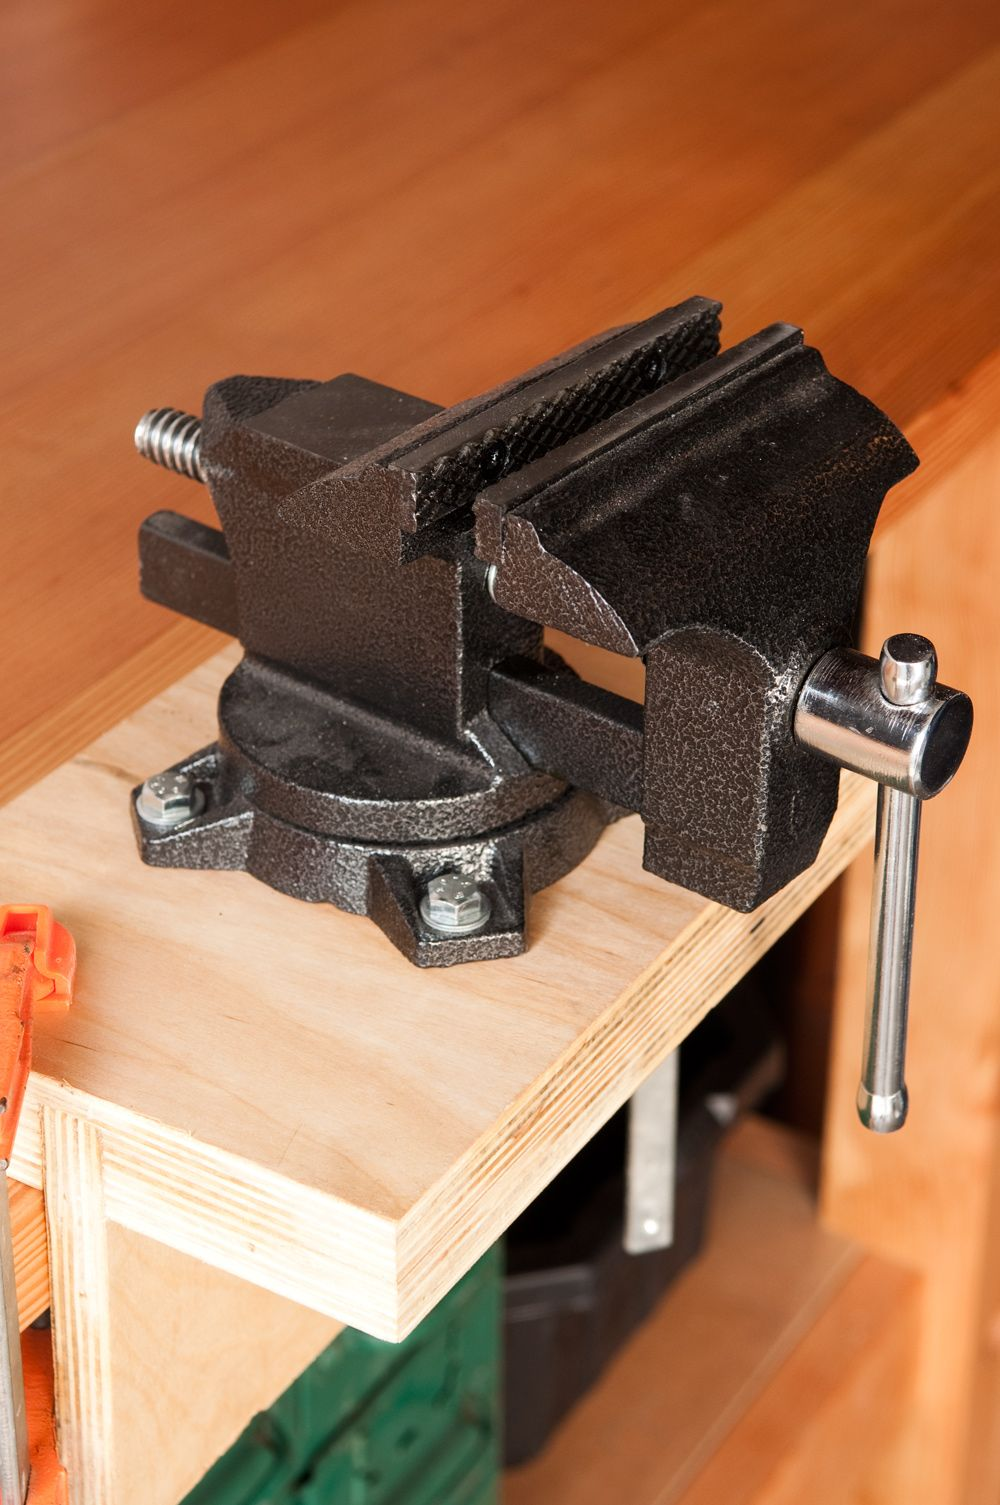 Terrific How To Install And Mount A Vise Without Drilling Holes In Ibusinesslaw Wood Chair Design Ideas Ibusinesslaworg